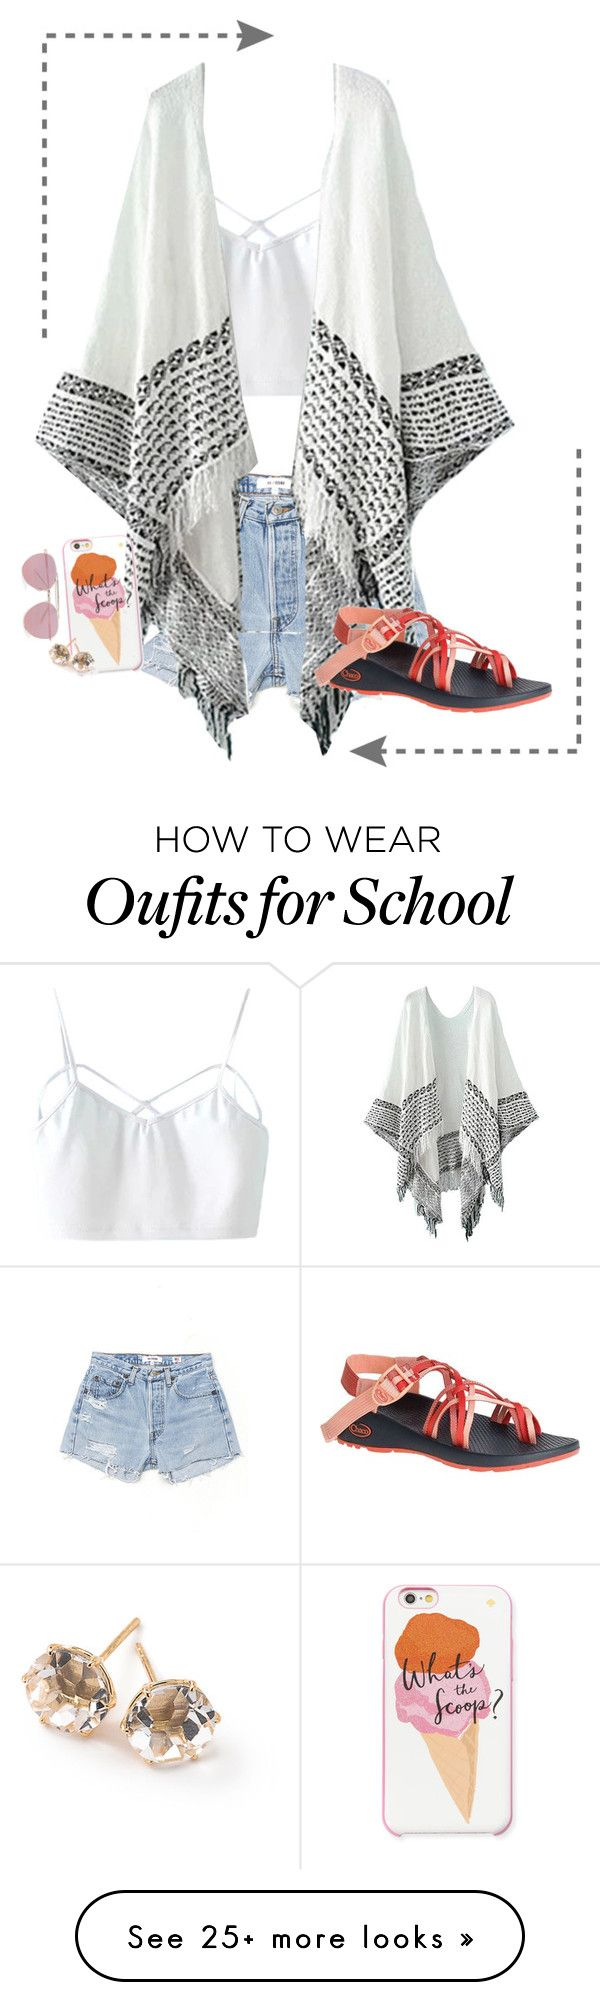 """What I do in school"" by wiertzemasue24 on Polyvore featuring RE/DONE, Chaco, Kate Spade, Boohoo, Ippolita and bored"